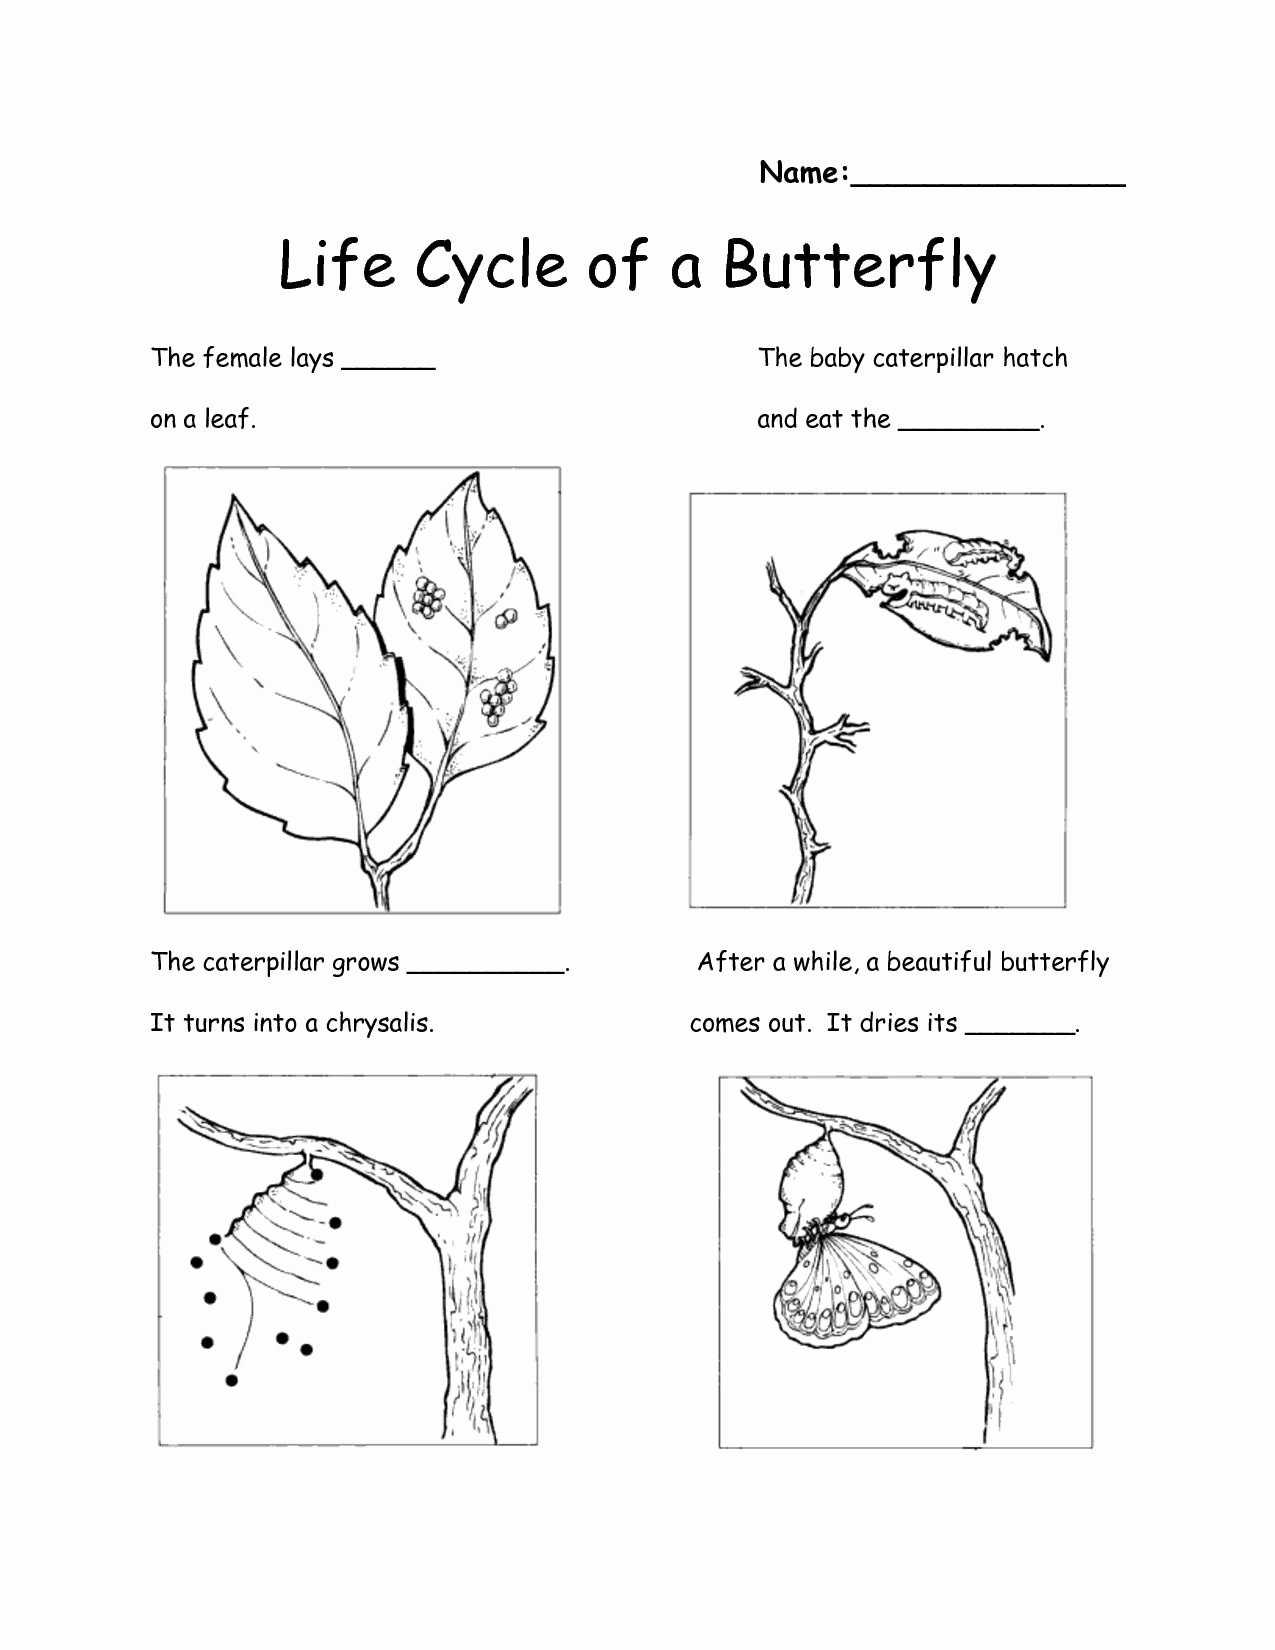 Example Science Worksheets For 2nd Grade Printable